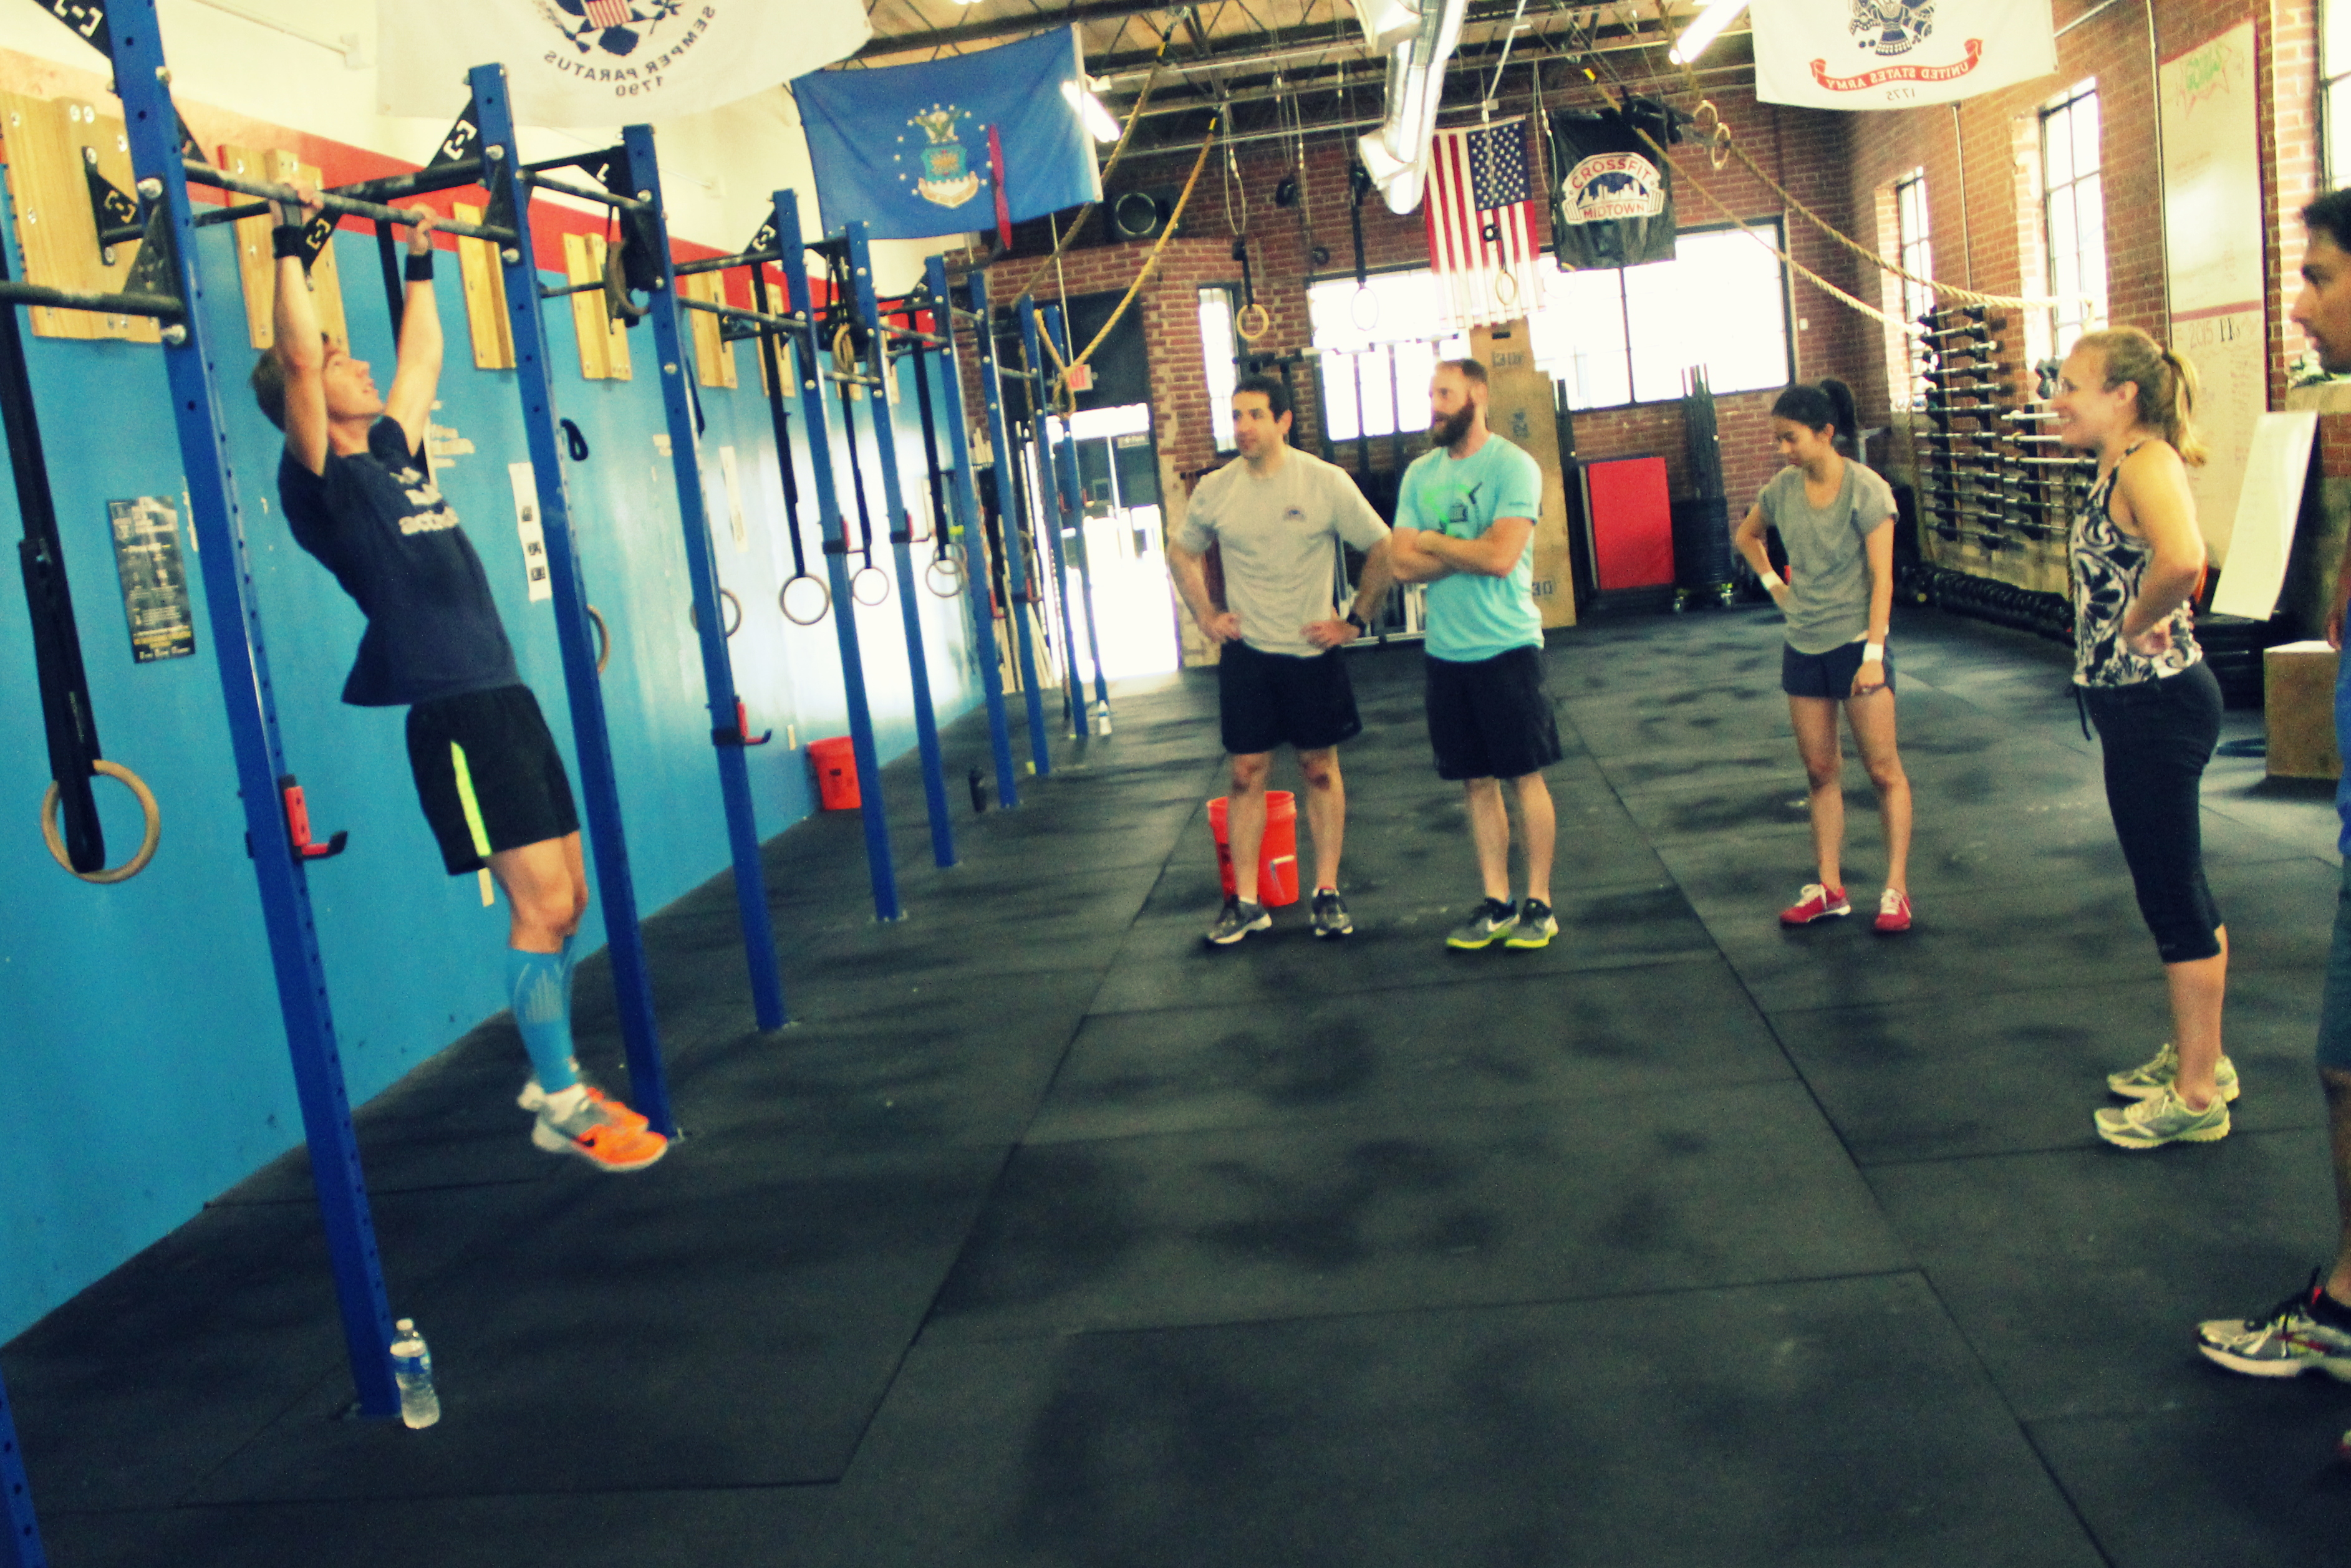 Lana Wilson Crossfit Midtown Pics Photos Circuit Training Workout 11 28 11a Cary Demoing Kipping Pullups For The Class